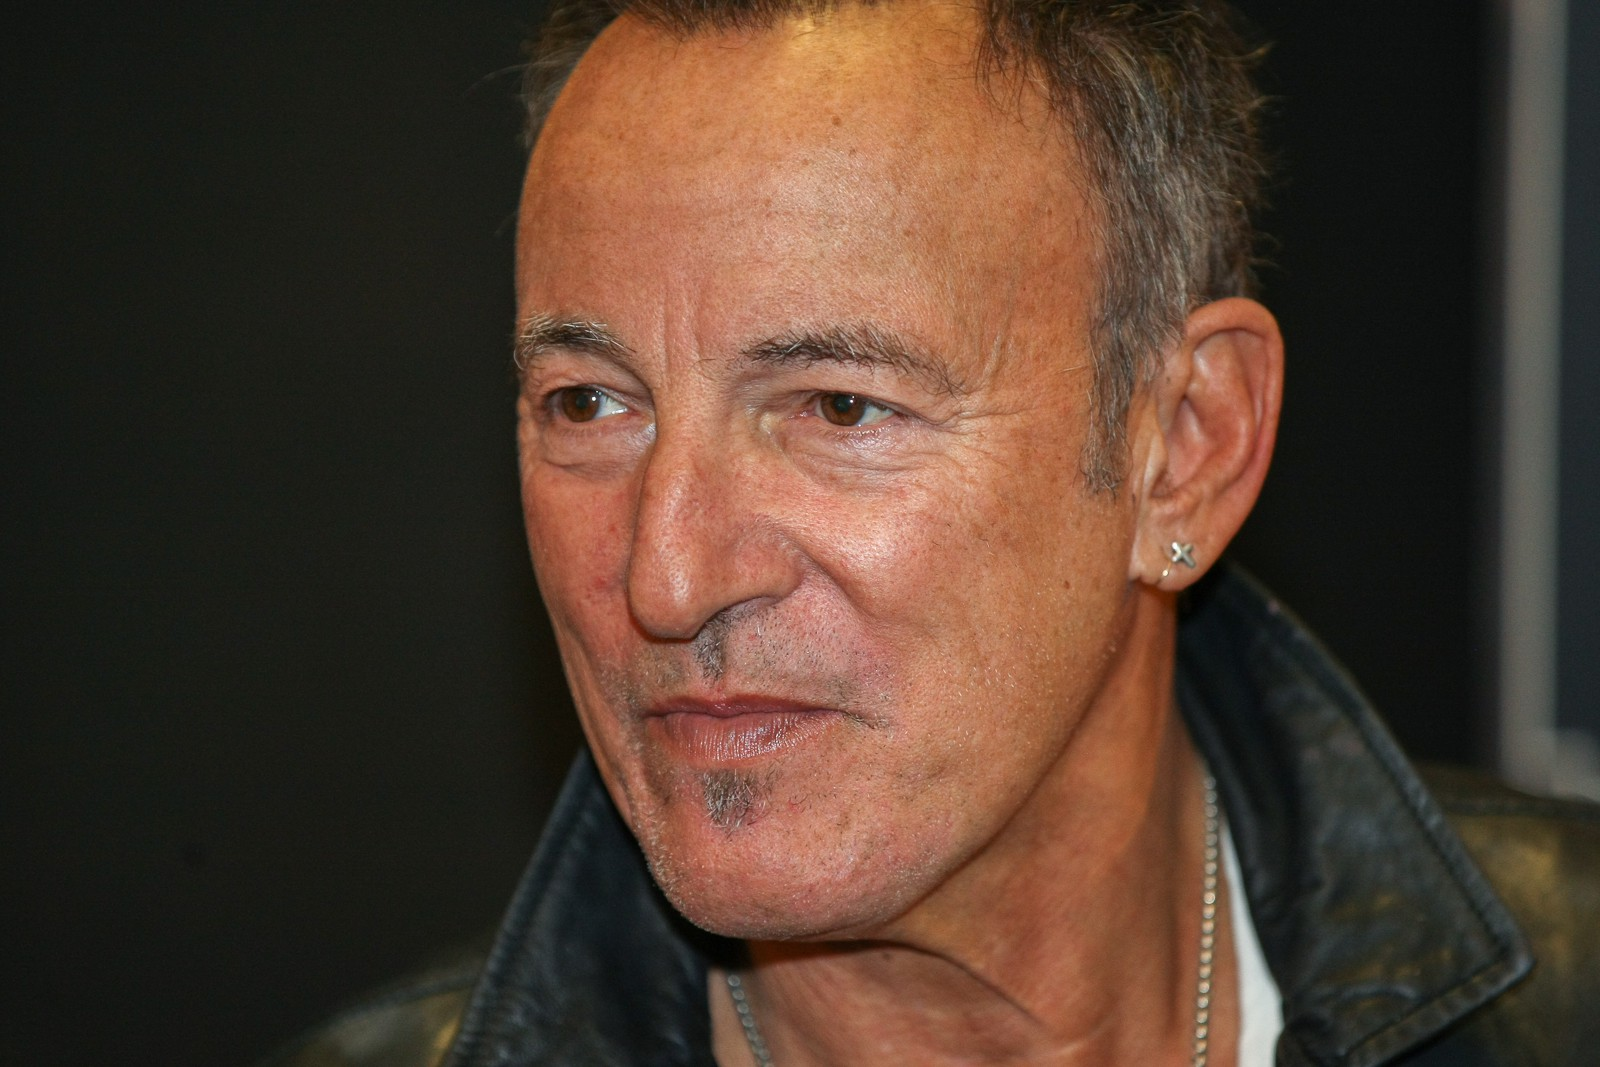 Westword / Bruce Springsteen Visits the Tattered Cover on Colfax Avenue